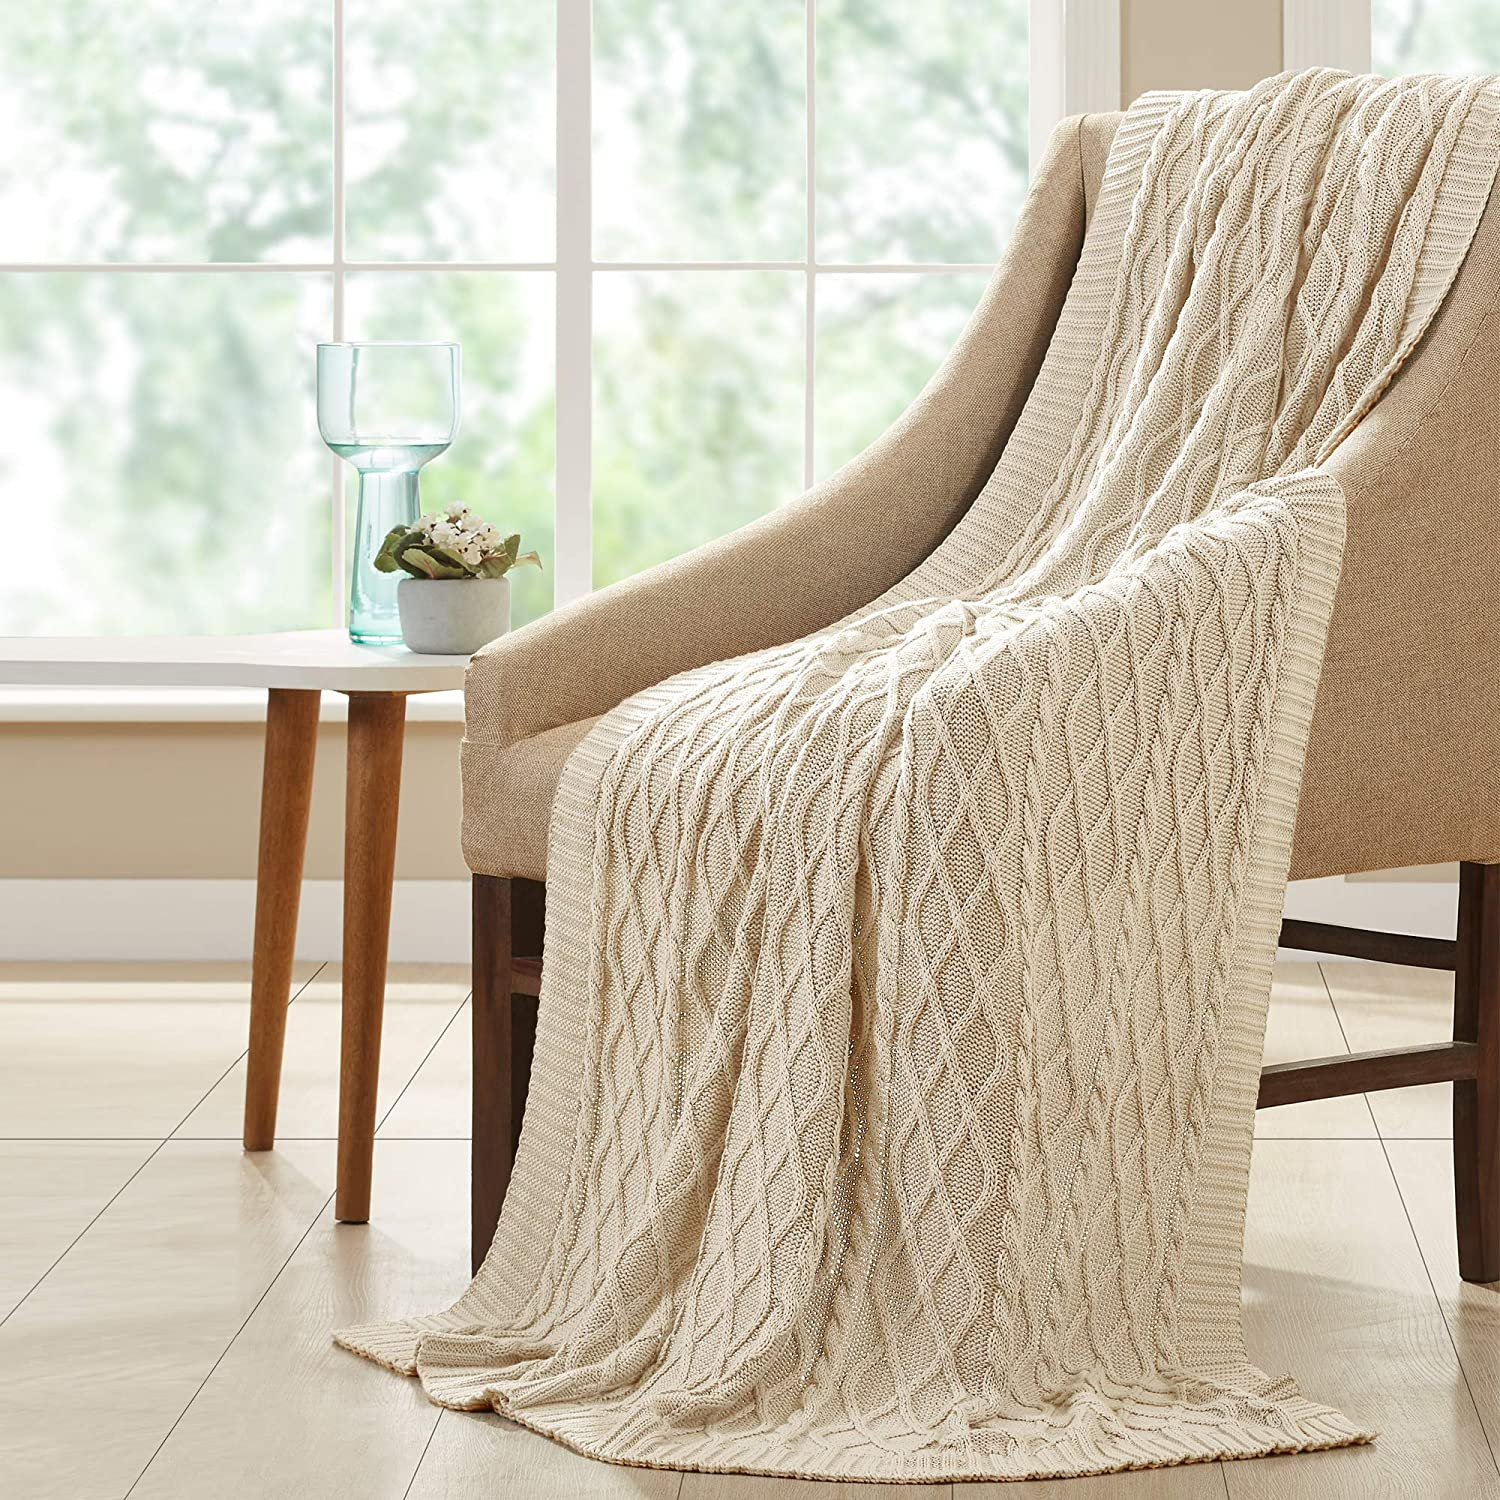 Amrapur Overseas 100% Recommendation Cotton Oversized Diamond Cable Throw Knit Popular shop is the lowest price challenge